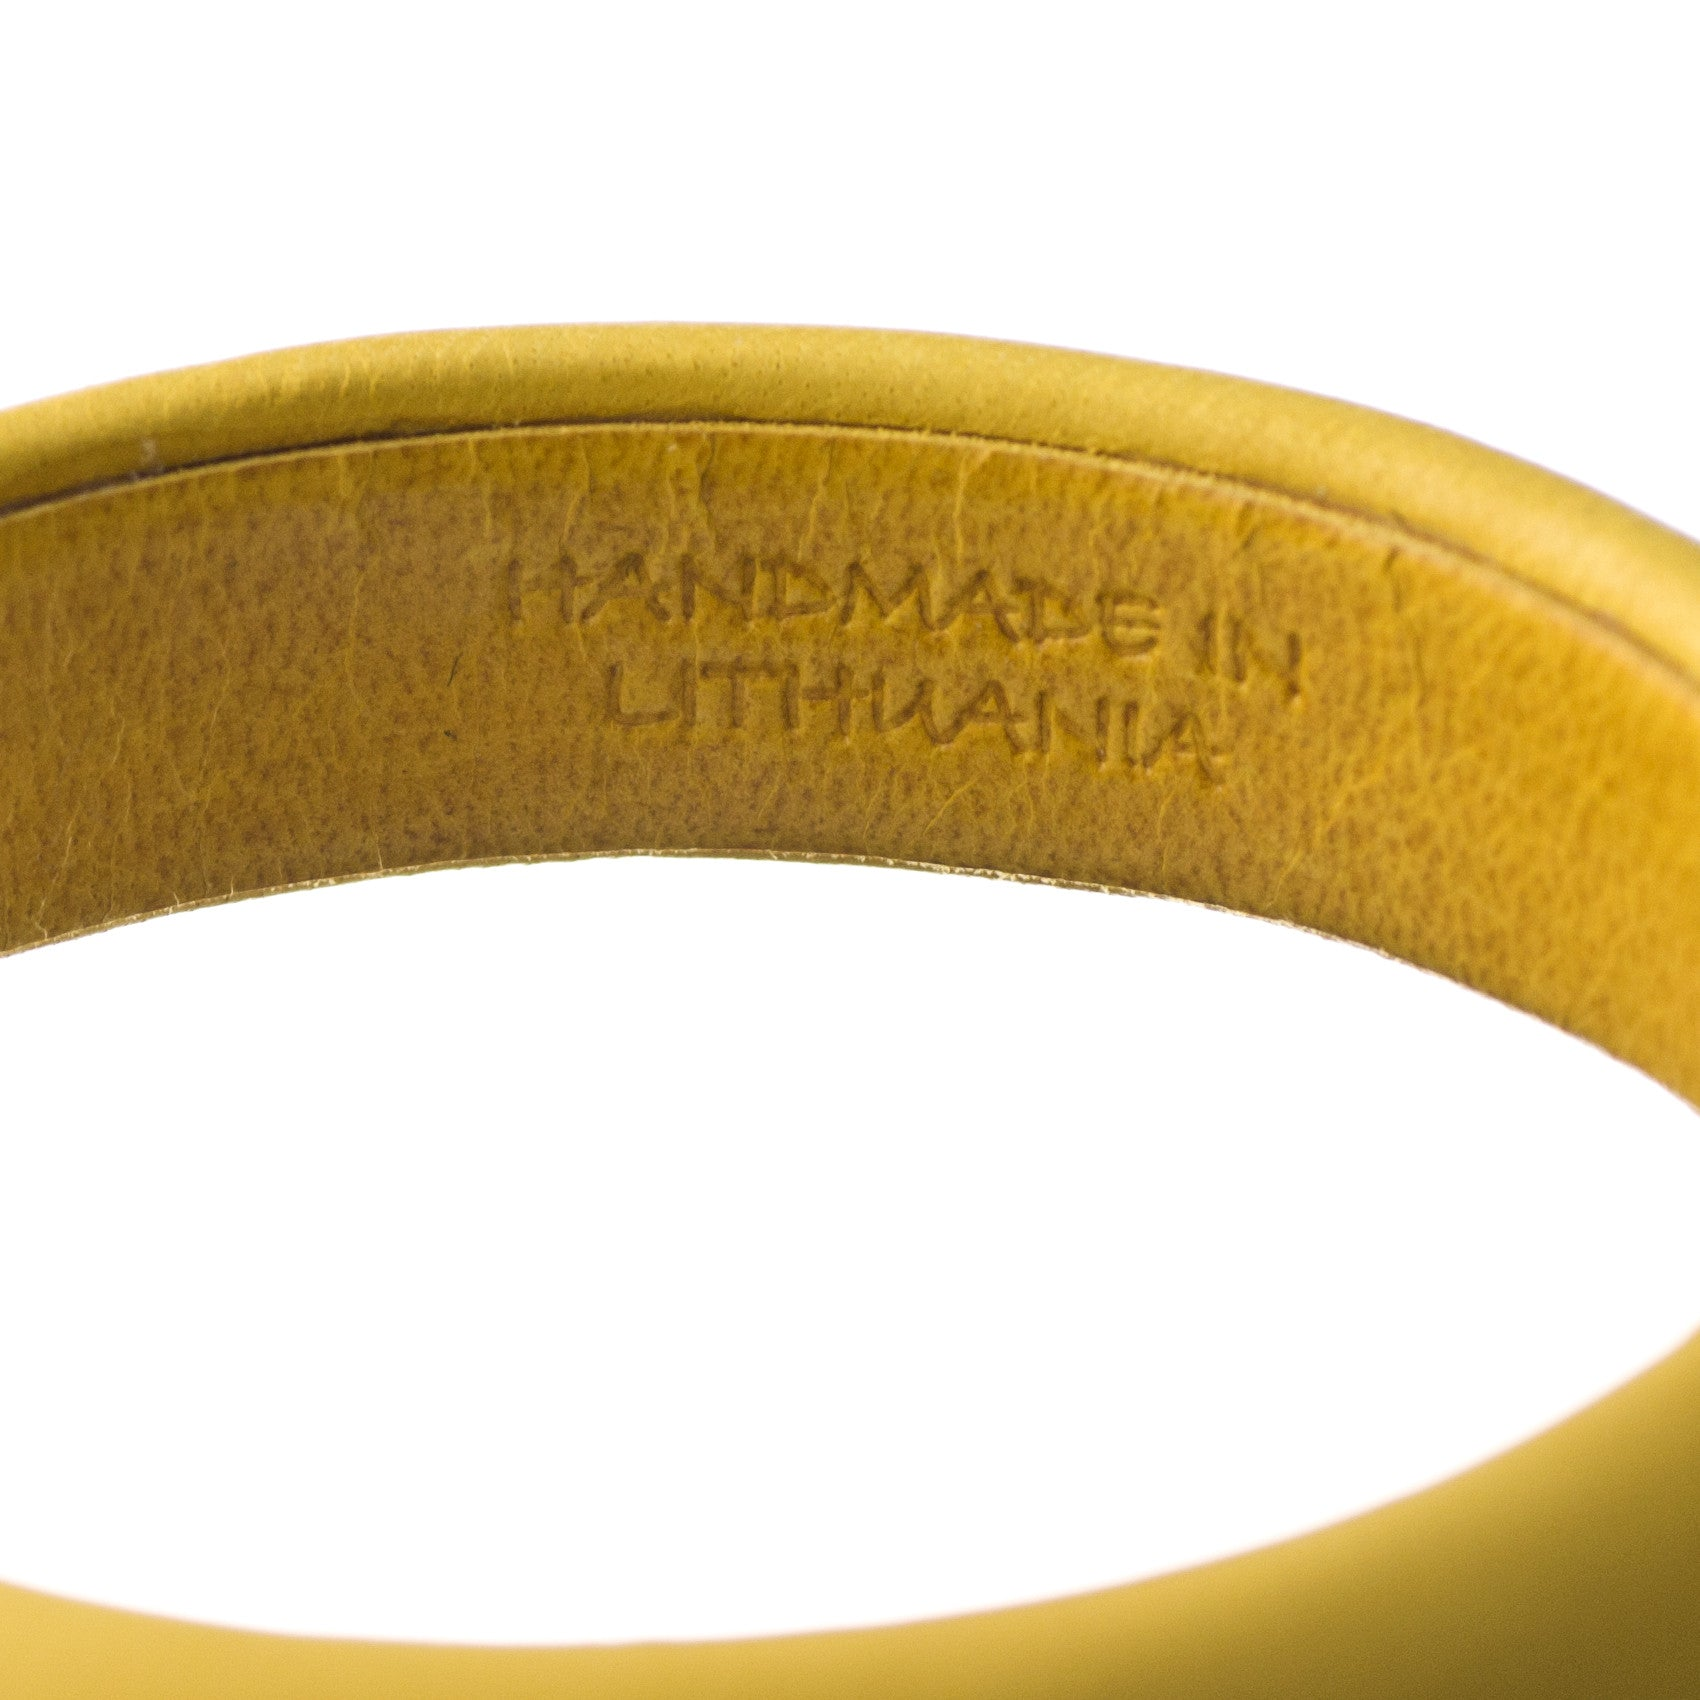 Yellow Leather Bangle Bracelet inside made in Lithuania sd1Twenty5